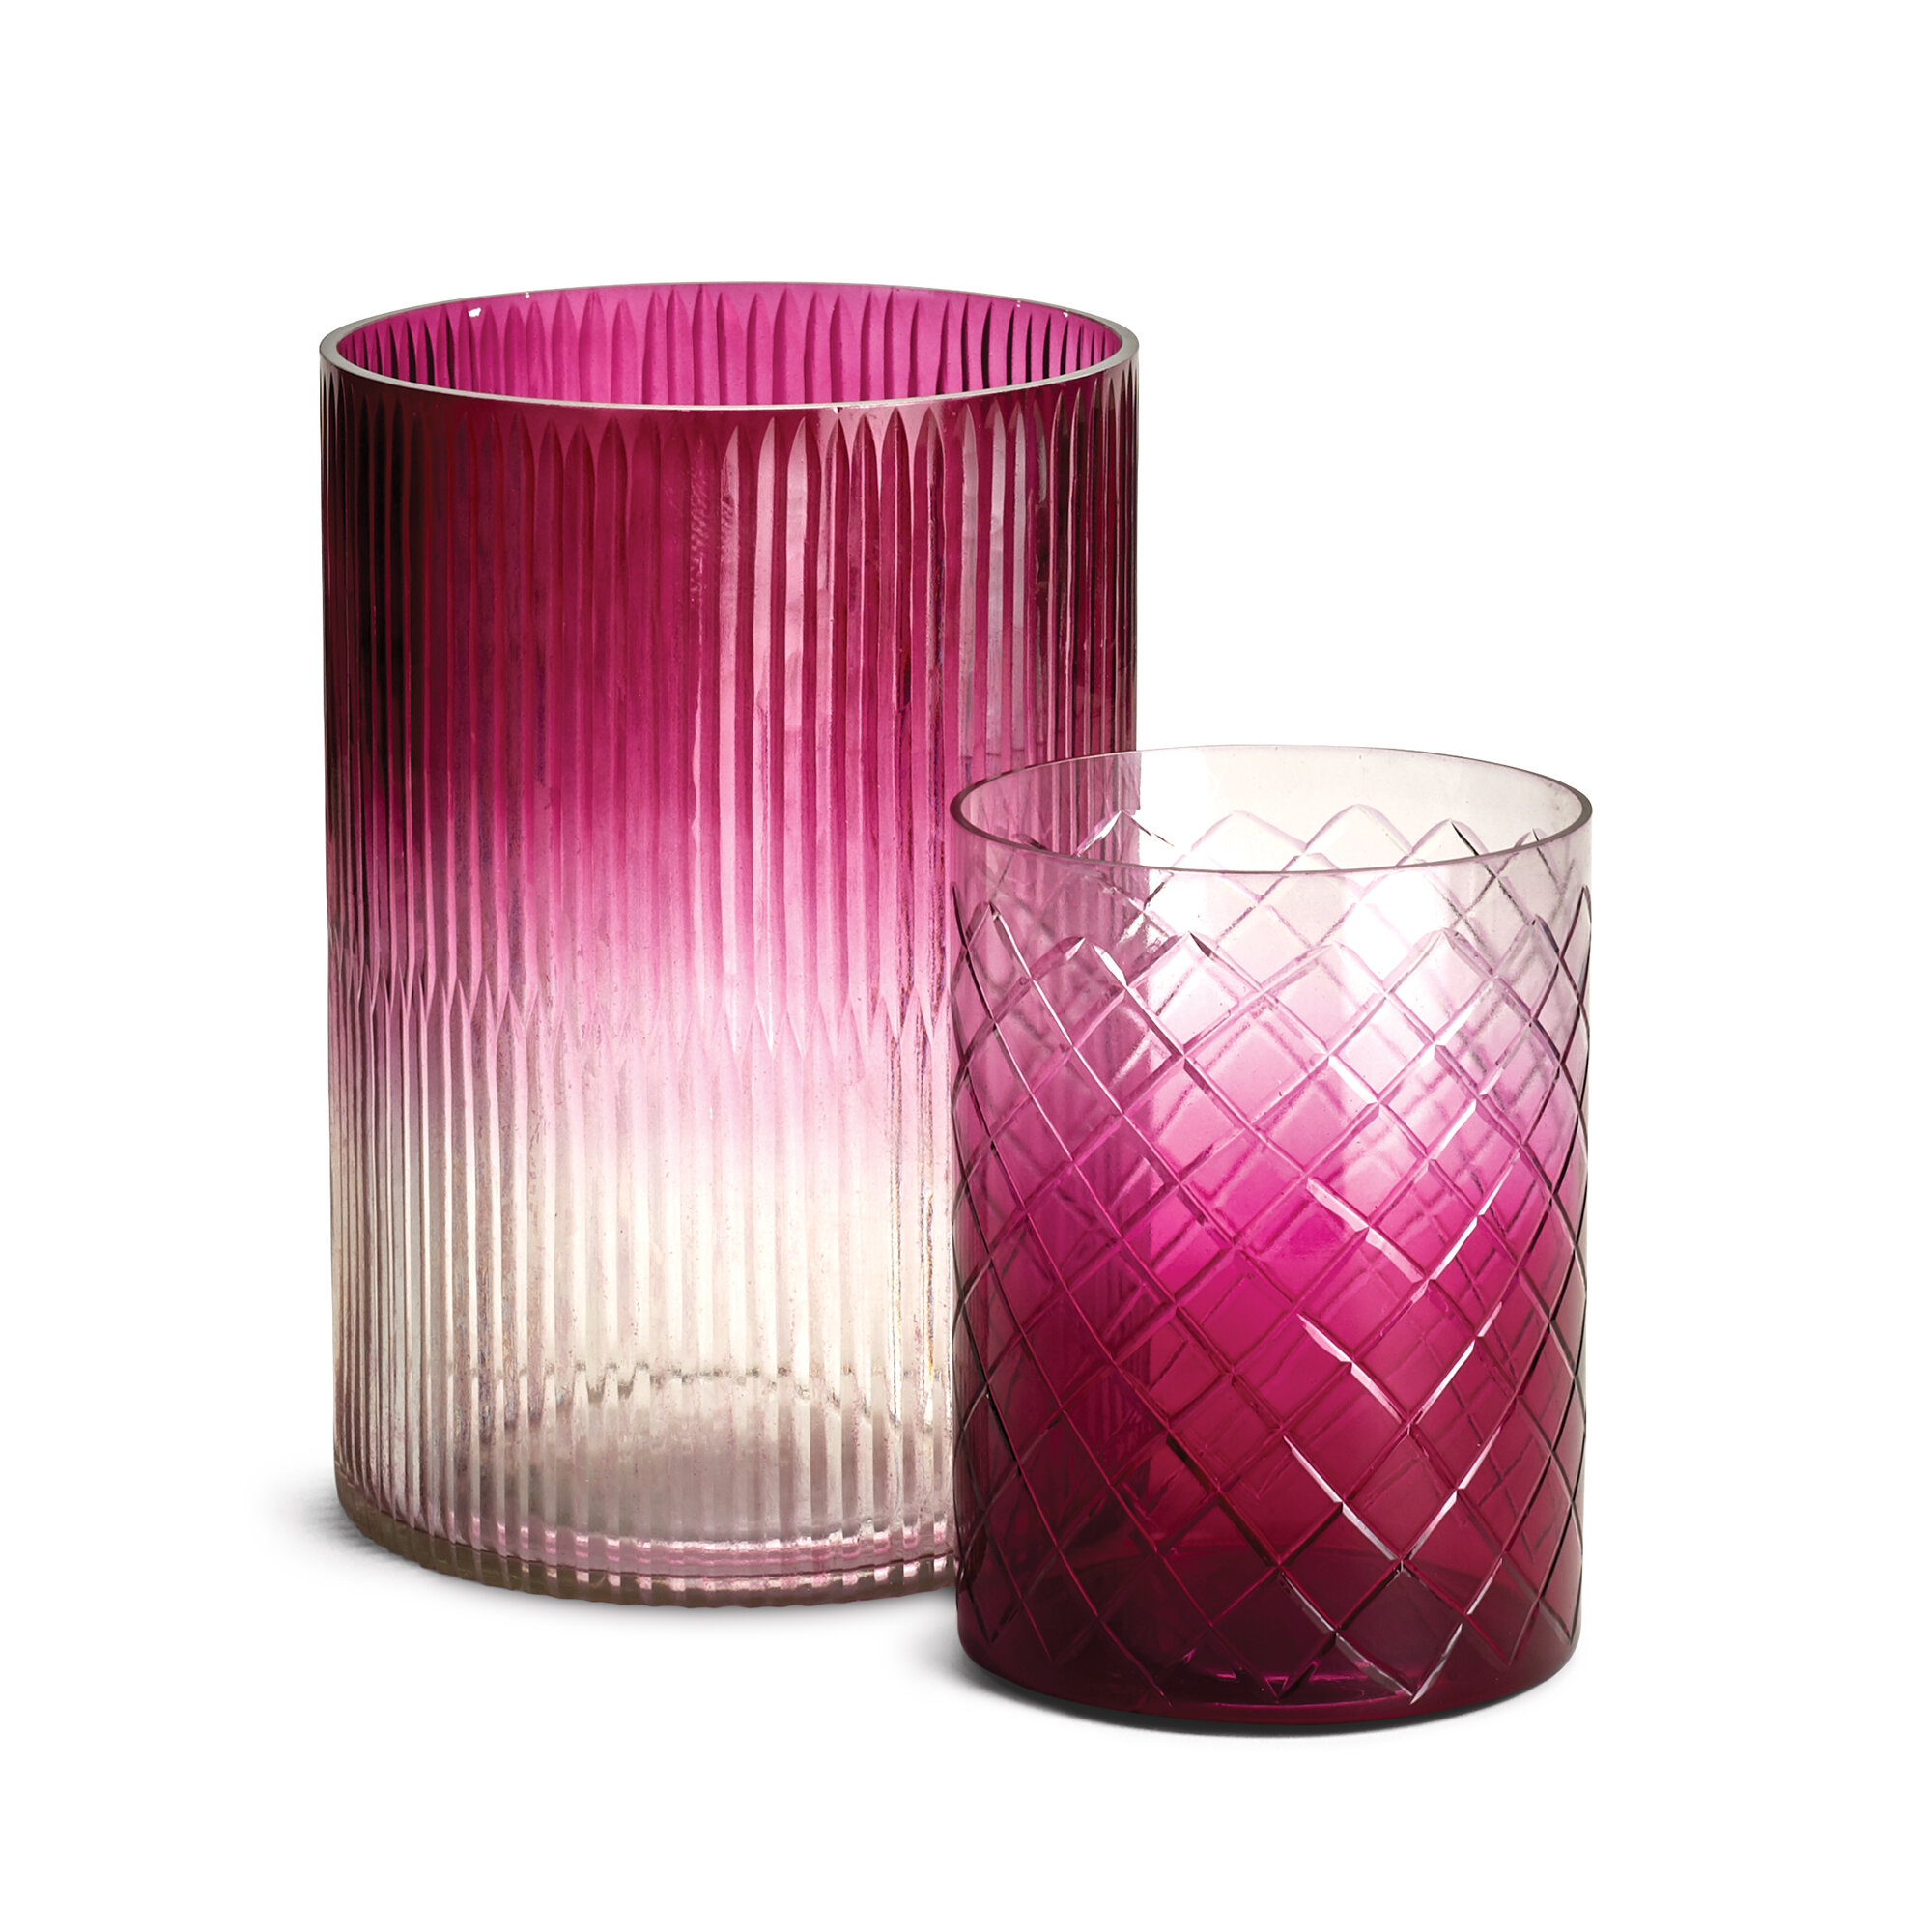 Hurricane Pink Candle Holders You Ll Love In 2021 Wayfair